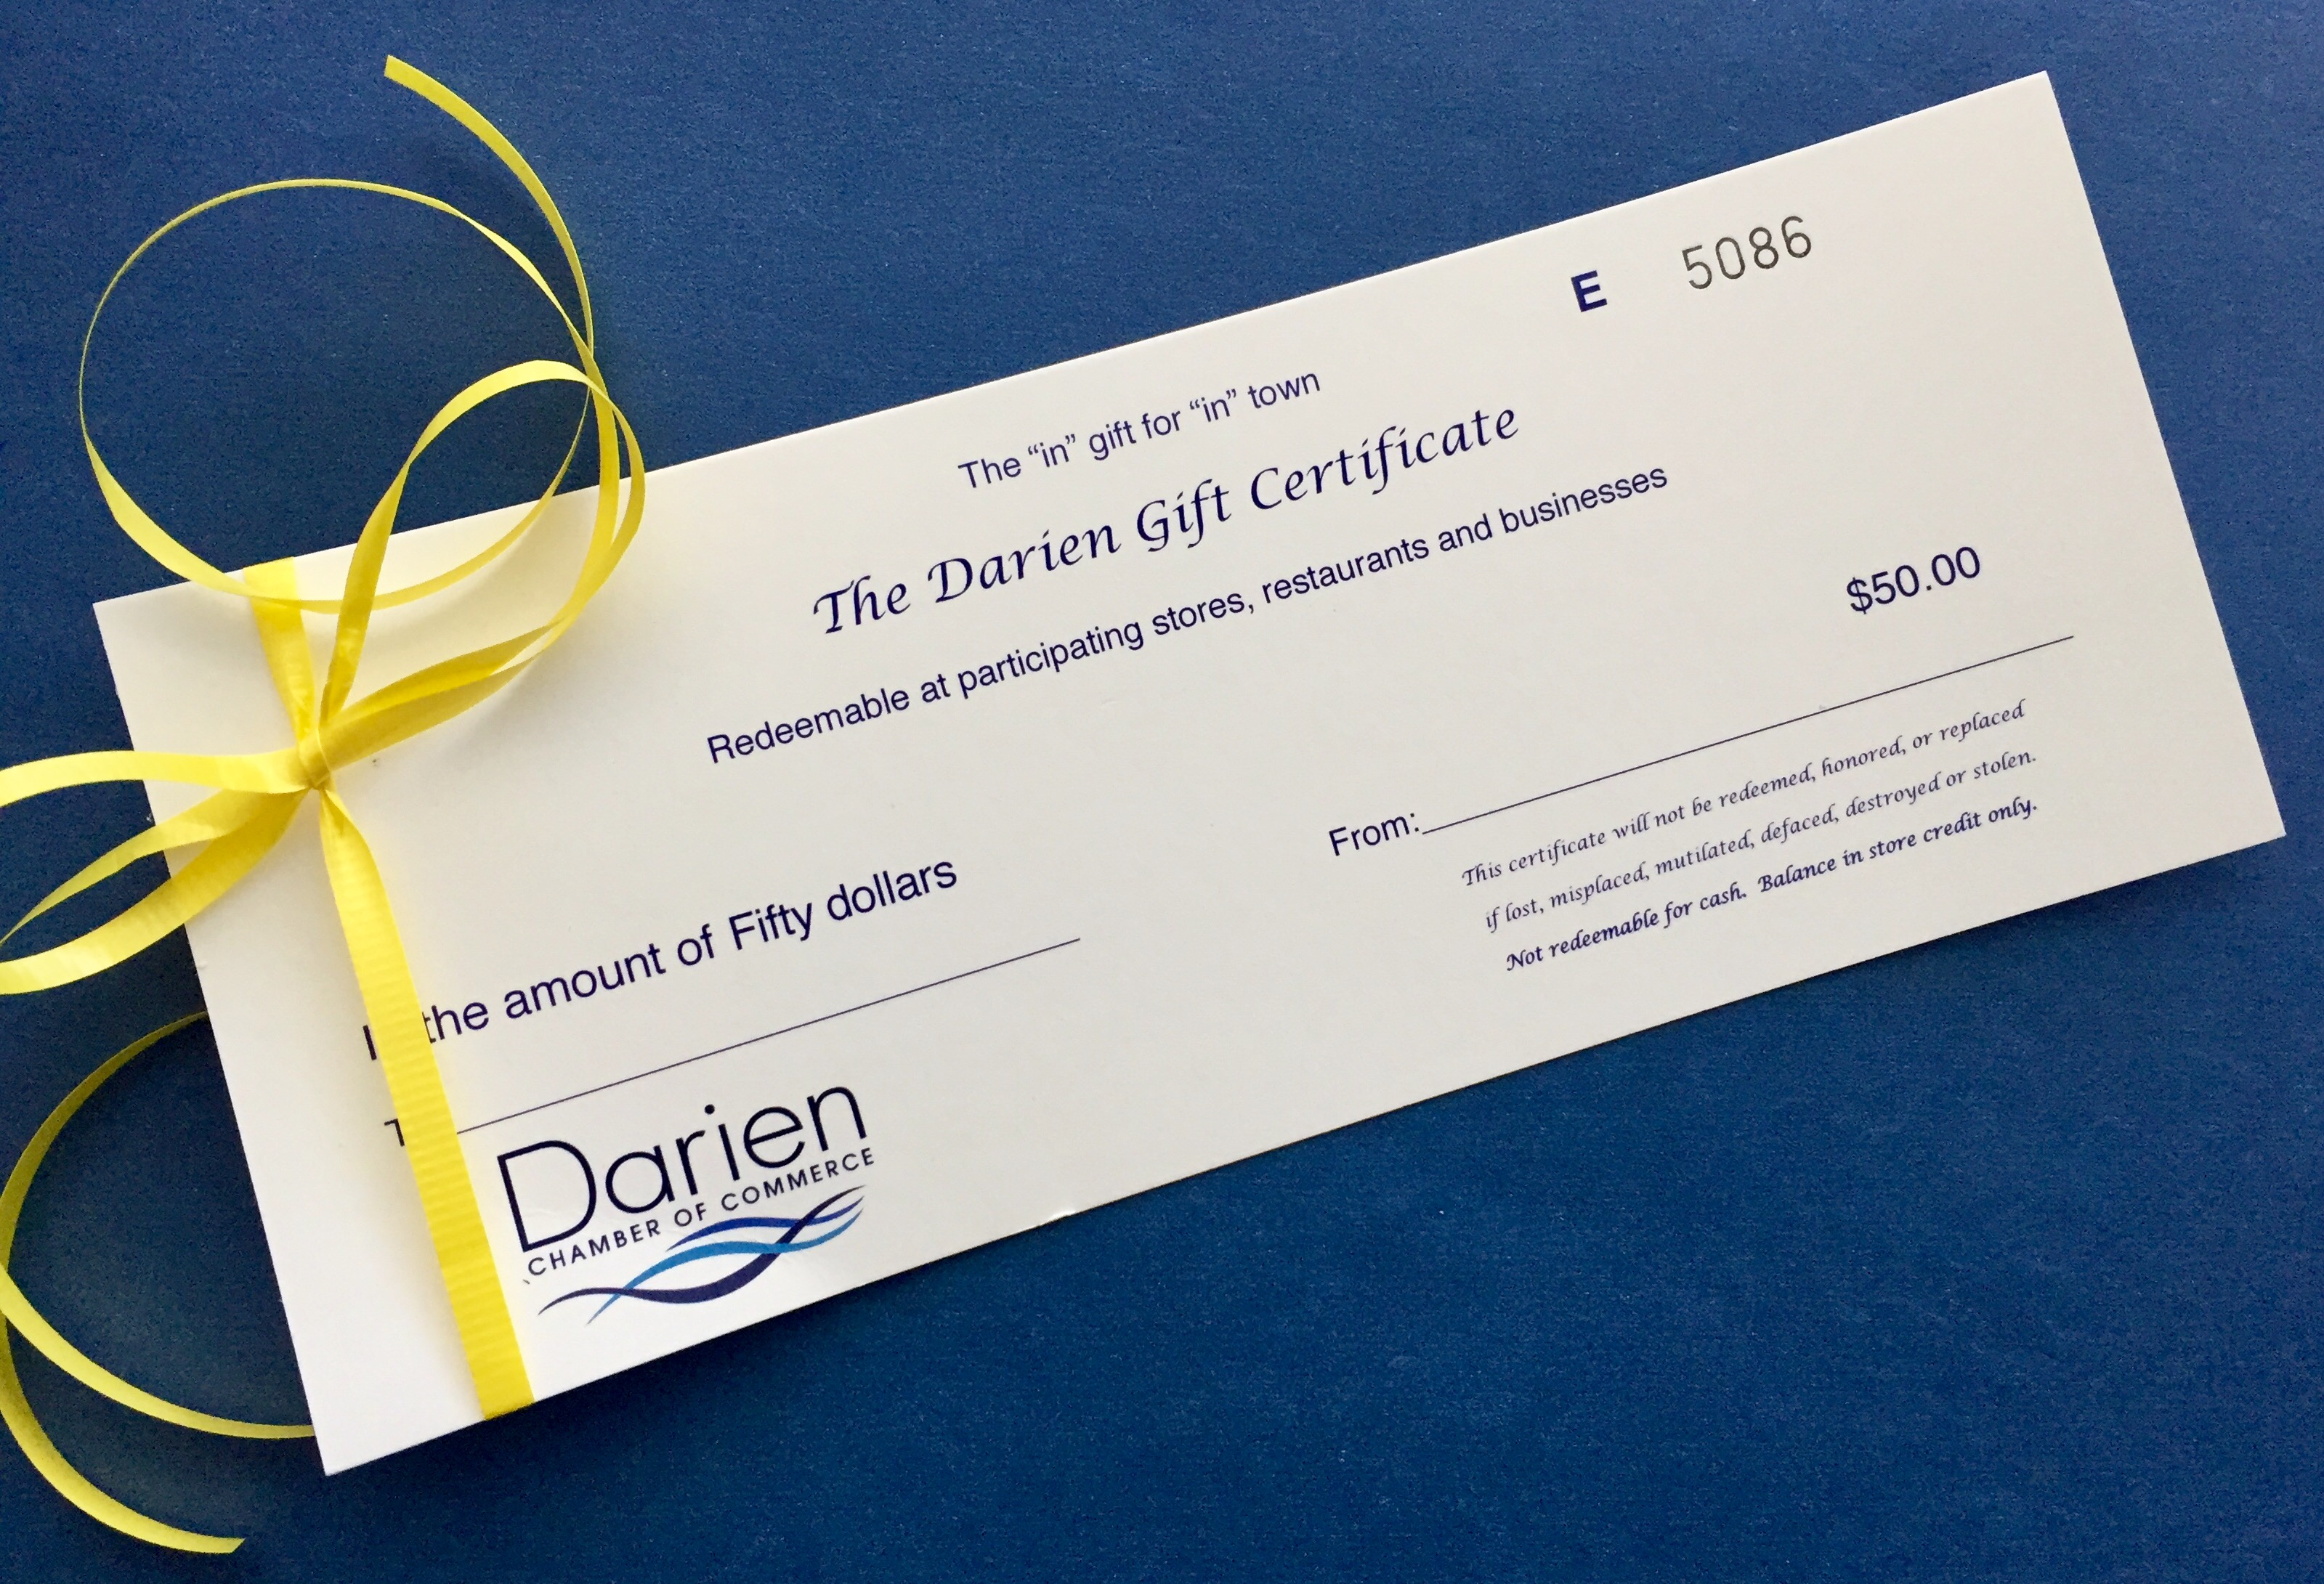 New-Gift-Certificate-photo